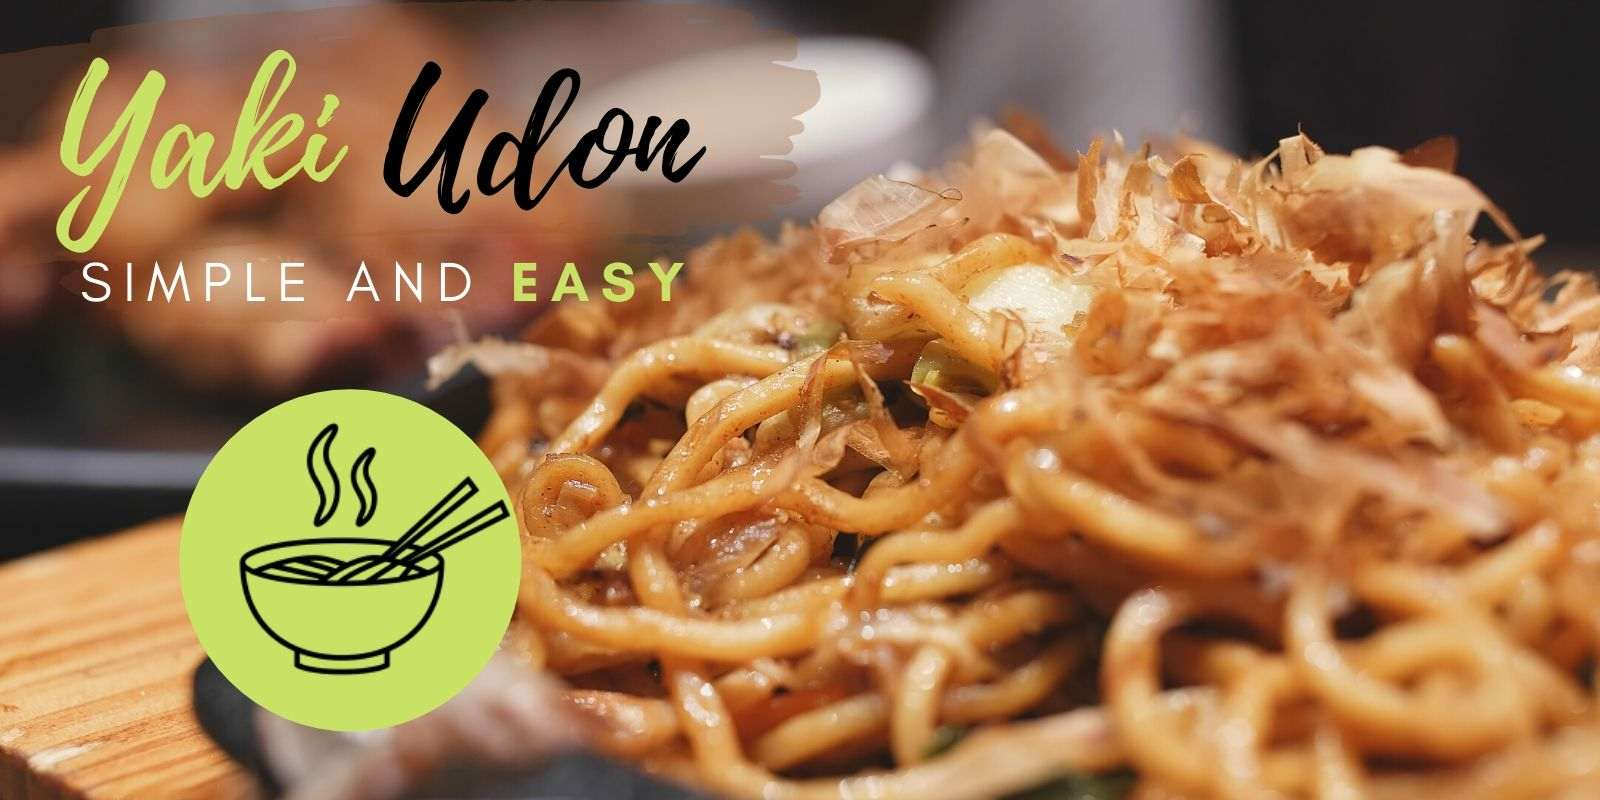 Simple Japanese yaki udon recipe